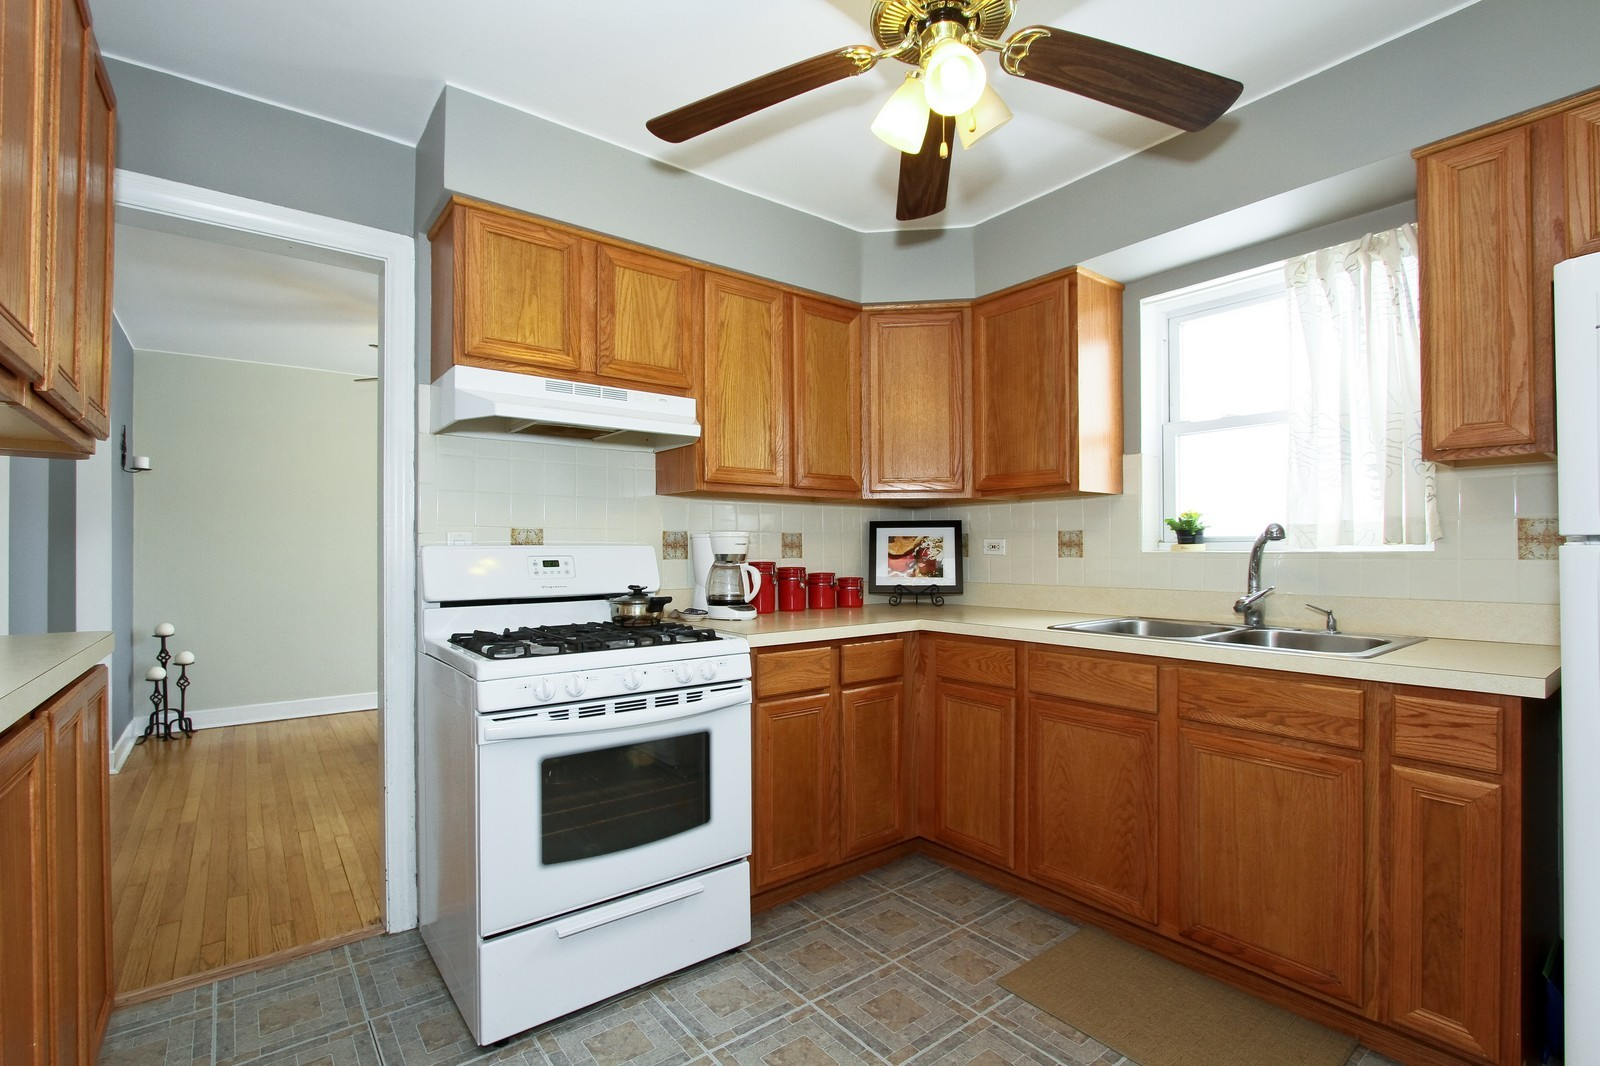 Real Estate Photography - 6053 S Menard Ave, Chicago, IL, 60638 - Kitchen